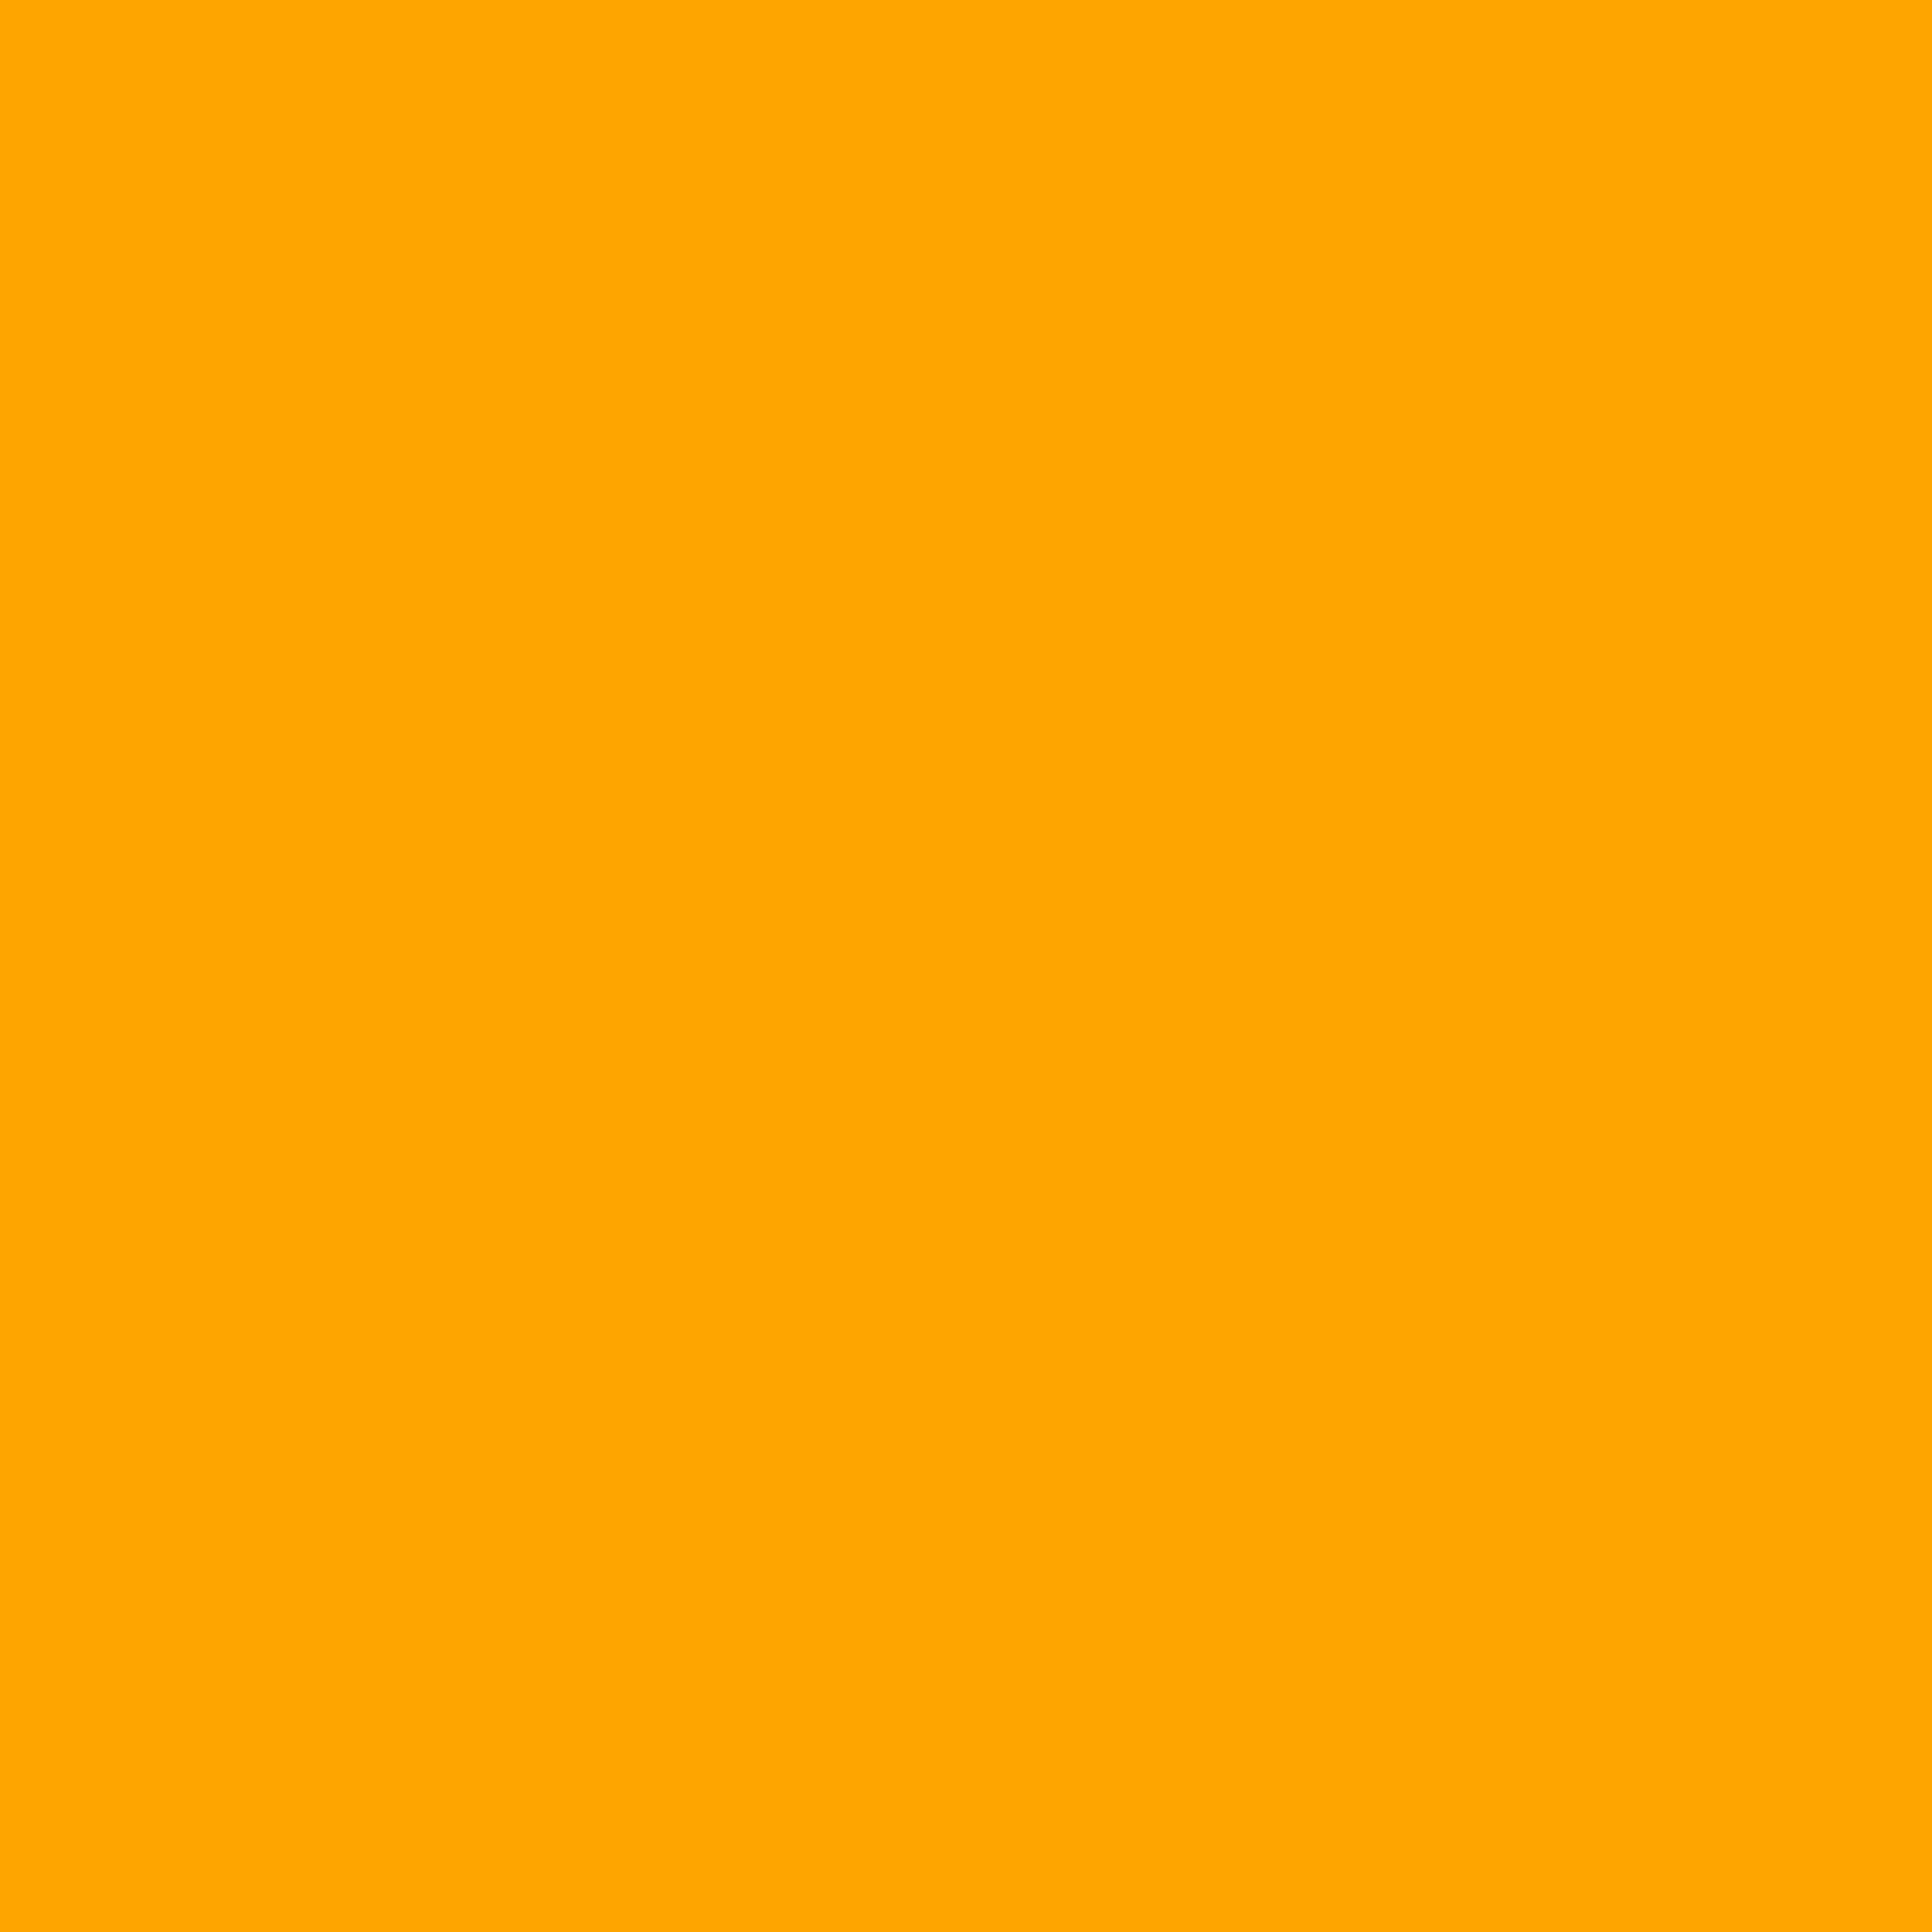 2048x2048 Orange Web Solid Color Background